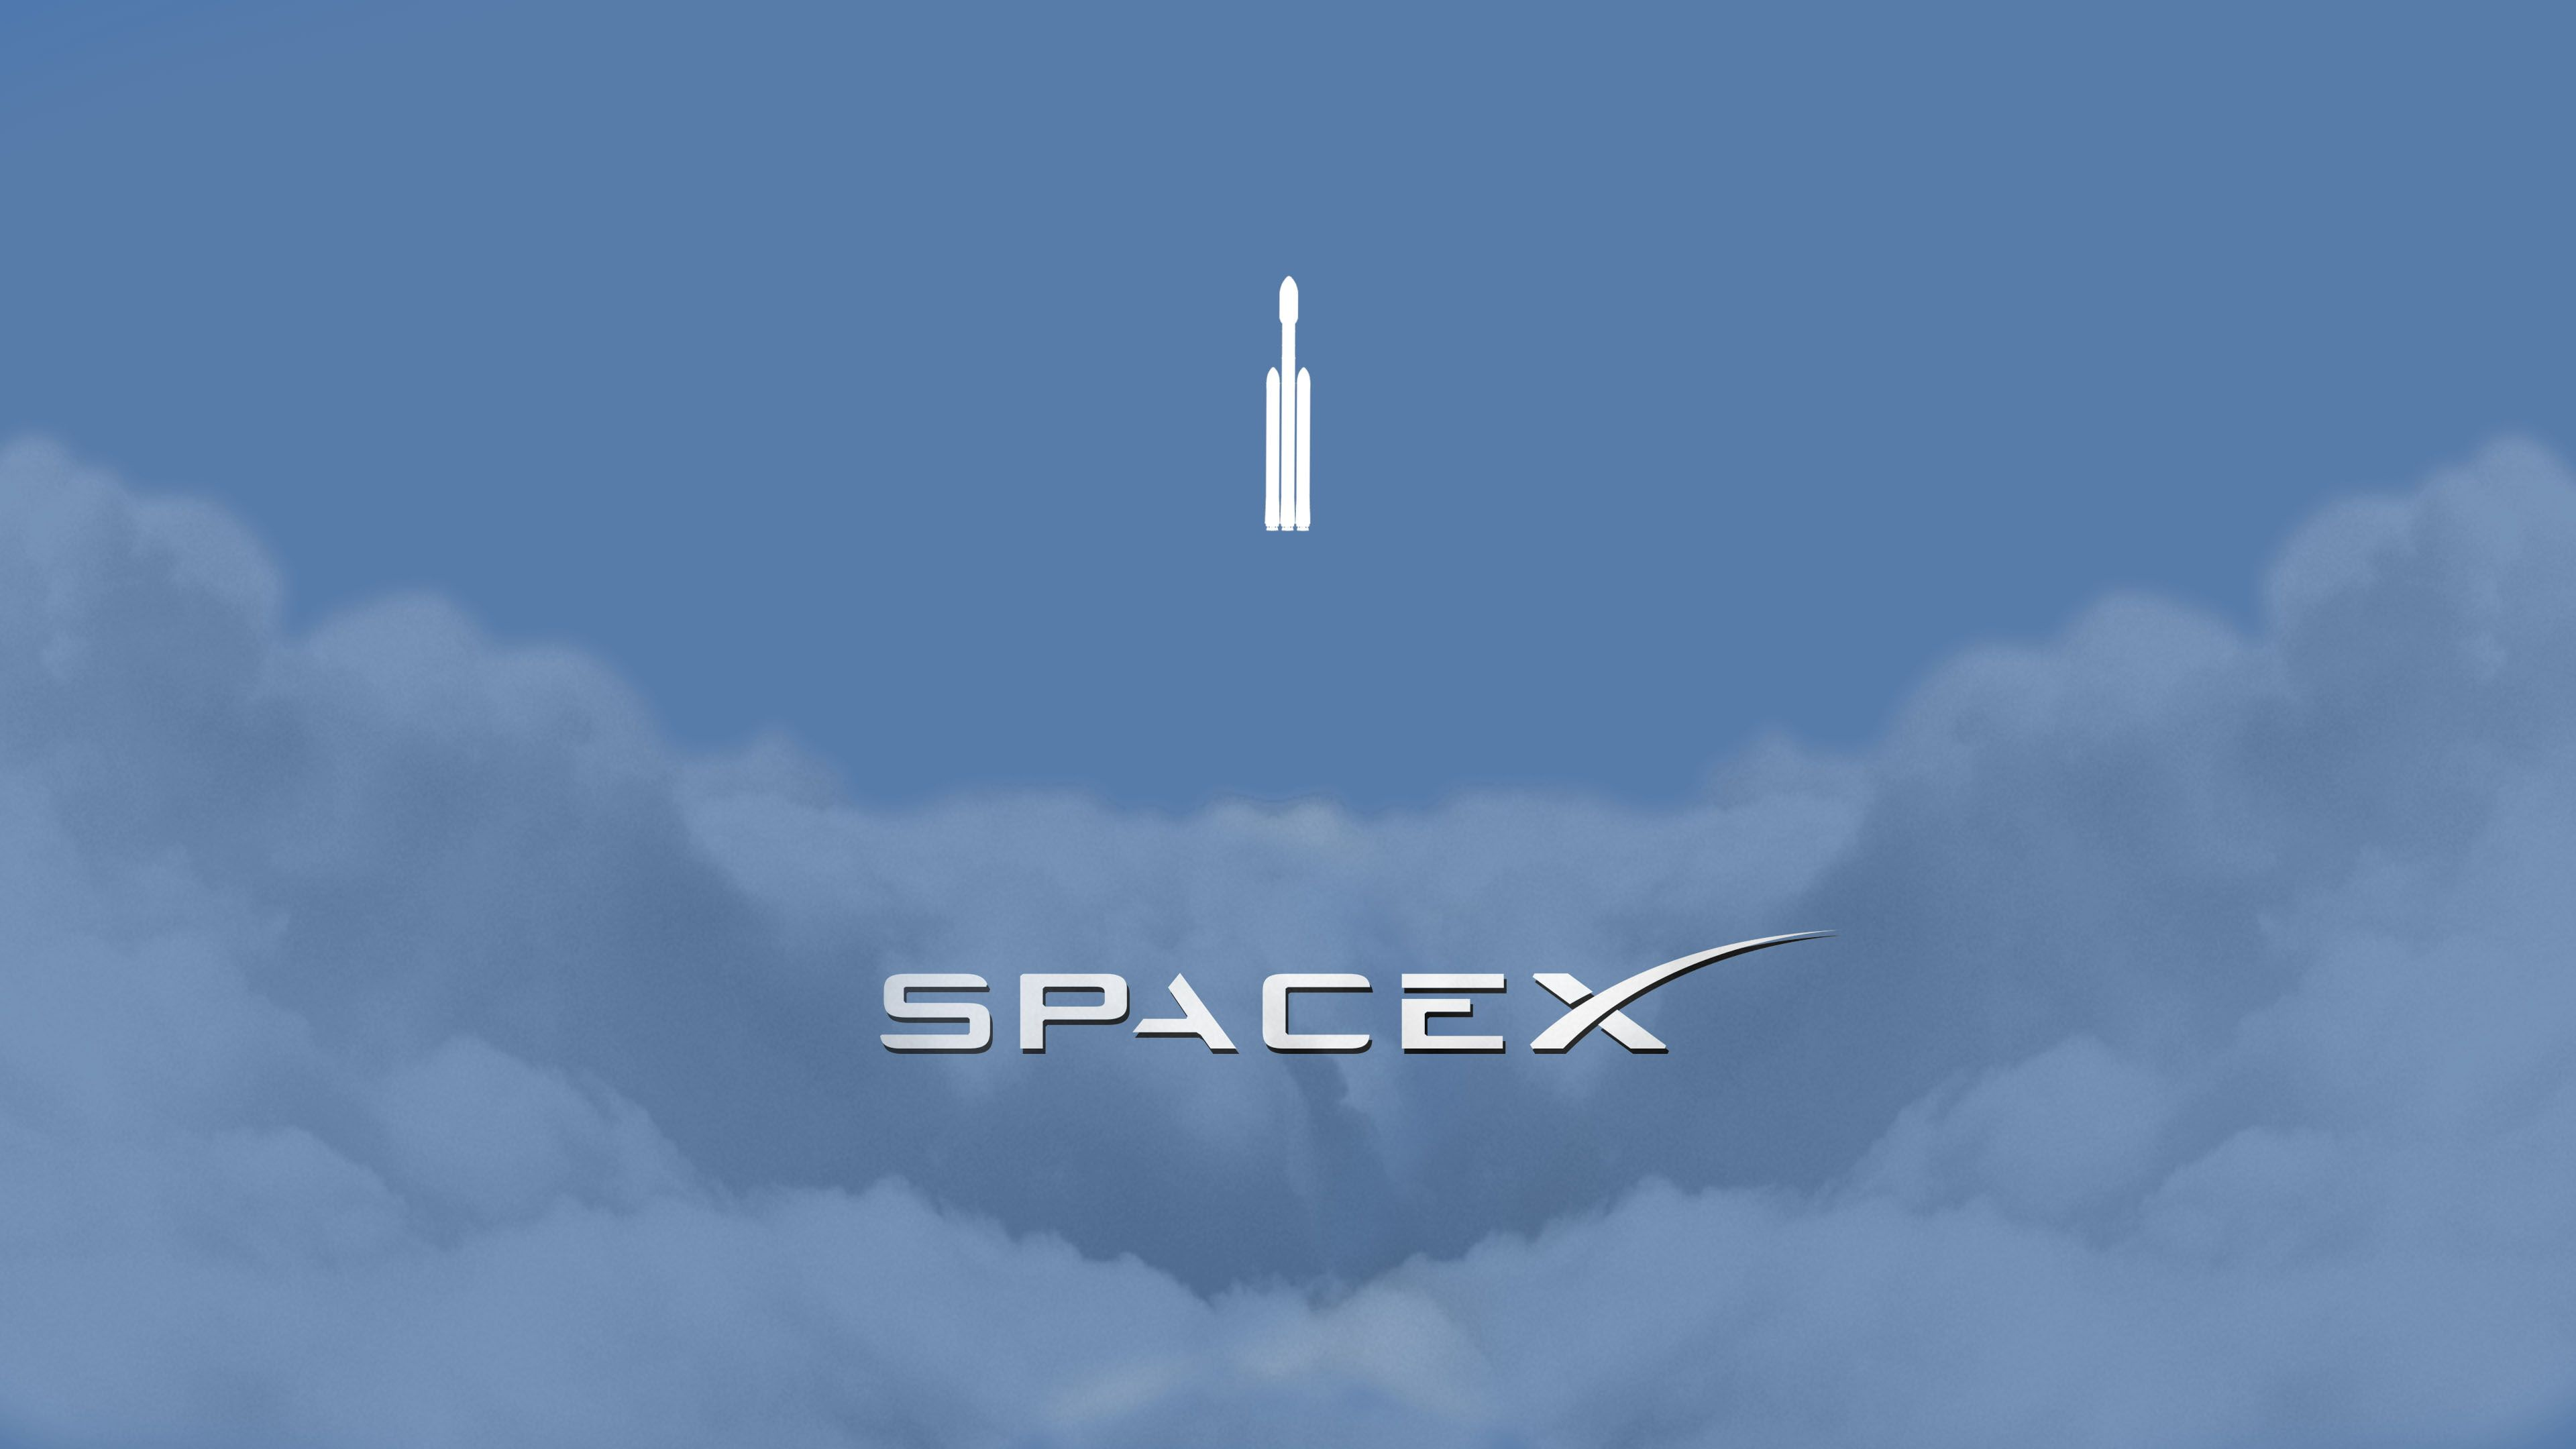 Clouds Minimalism Falcon Heavy Spaceship Space Logo Rocket Spacex Elon Musk 4k Wall In 2020 Iphone Wallpaper Usa Galaxy Wallpaper Iphone Space Phone Wallpaper